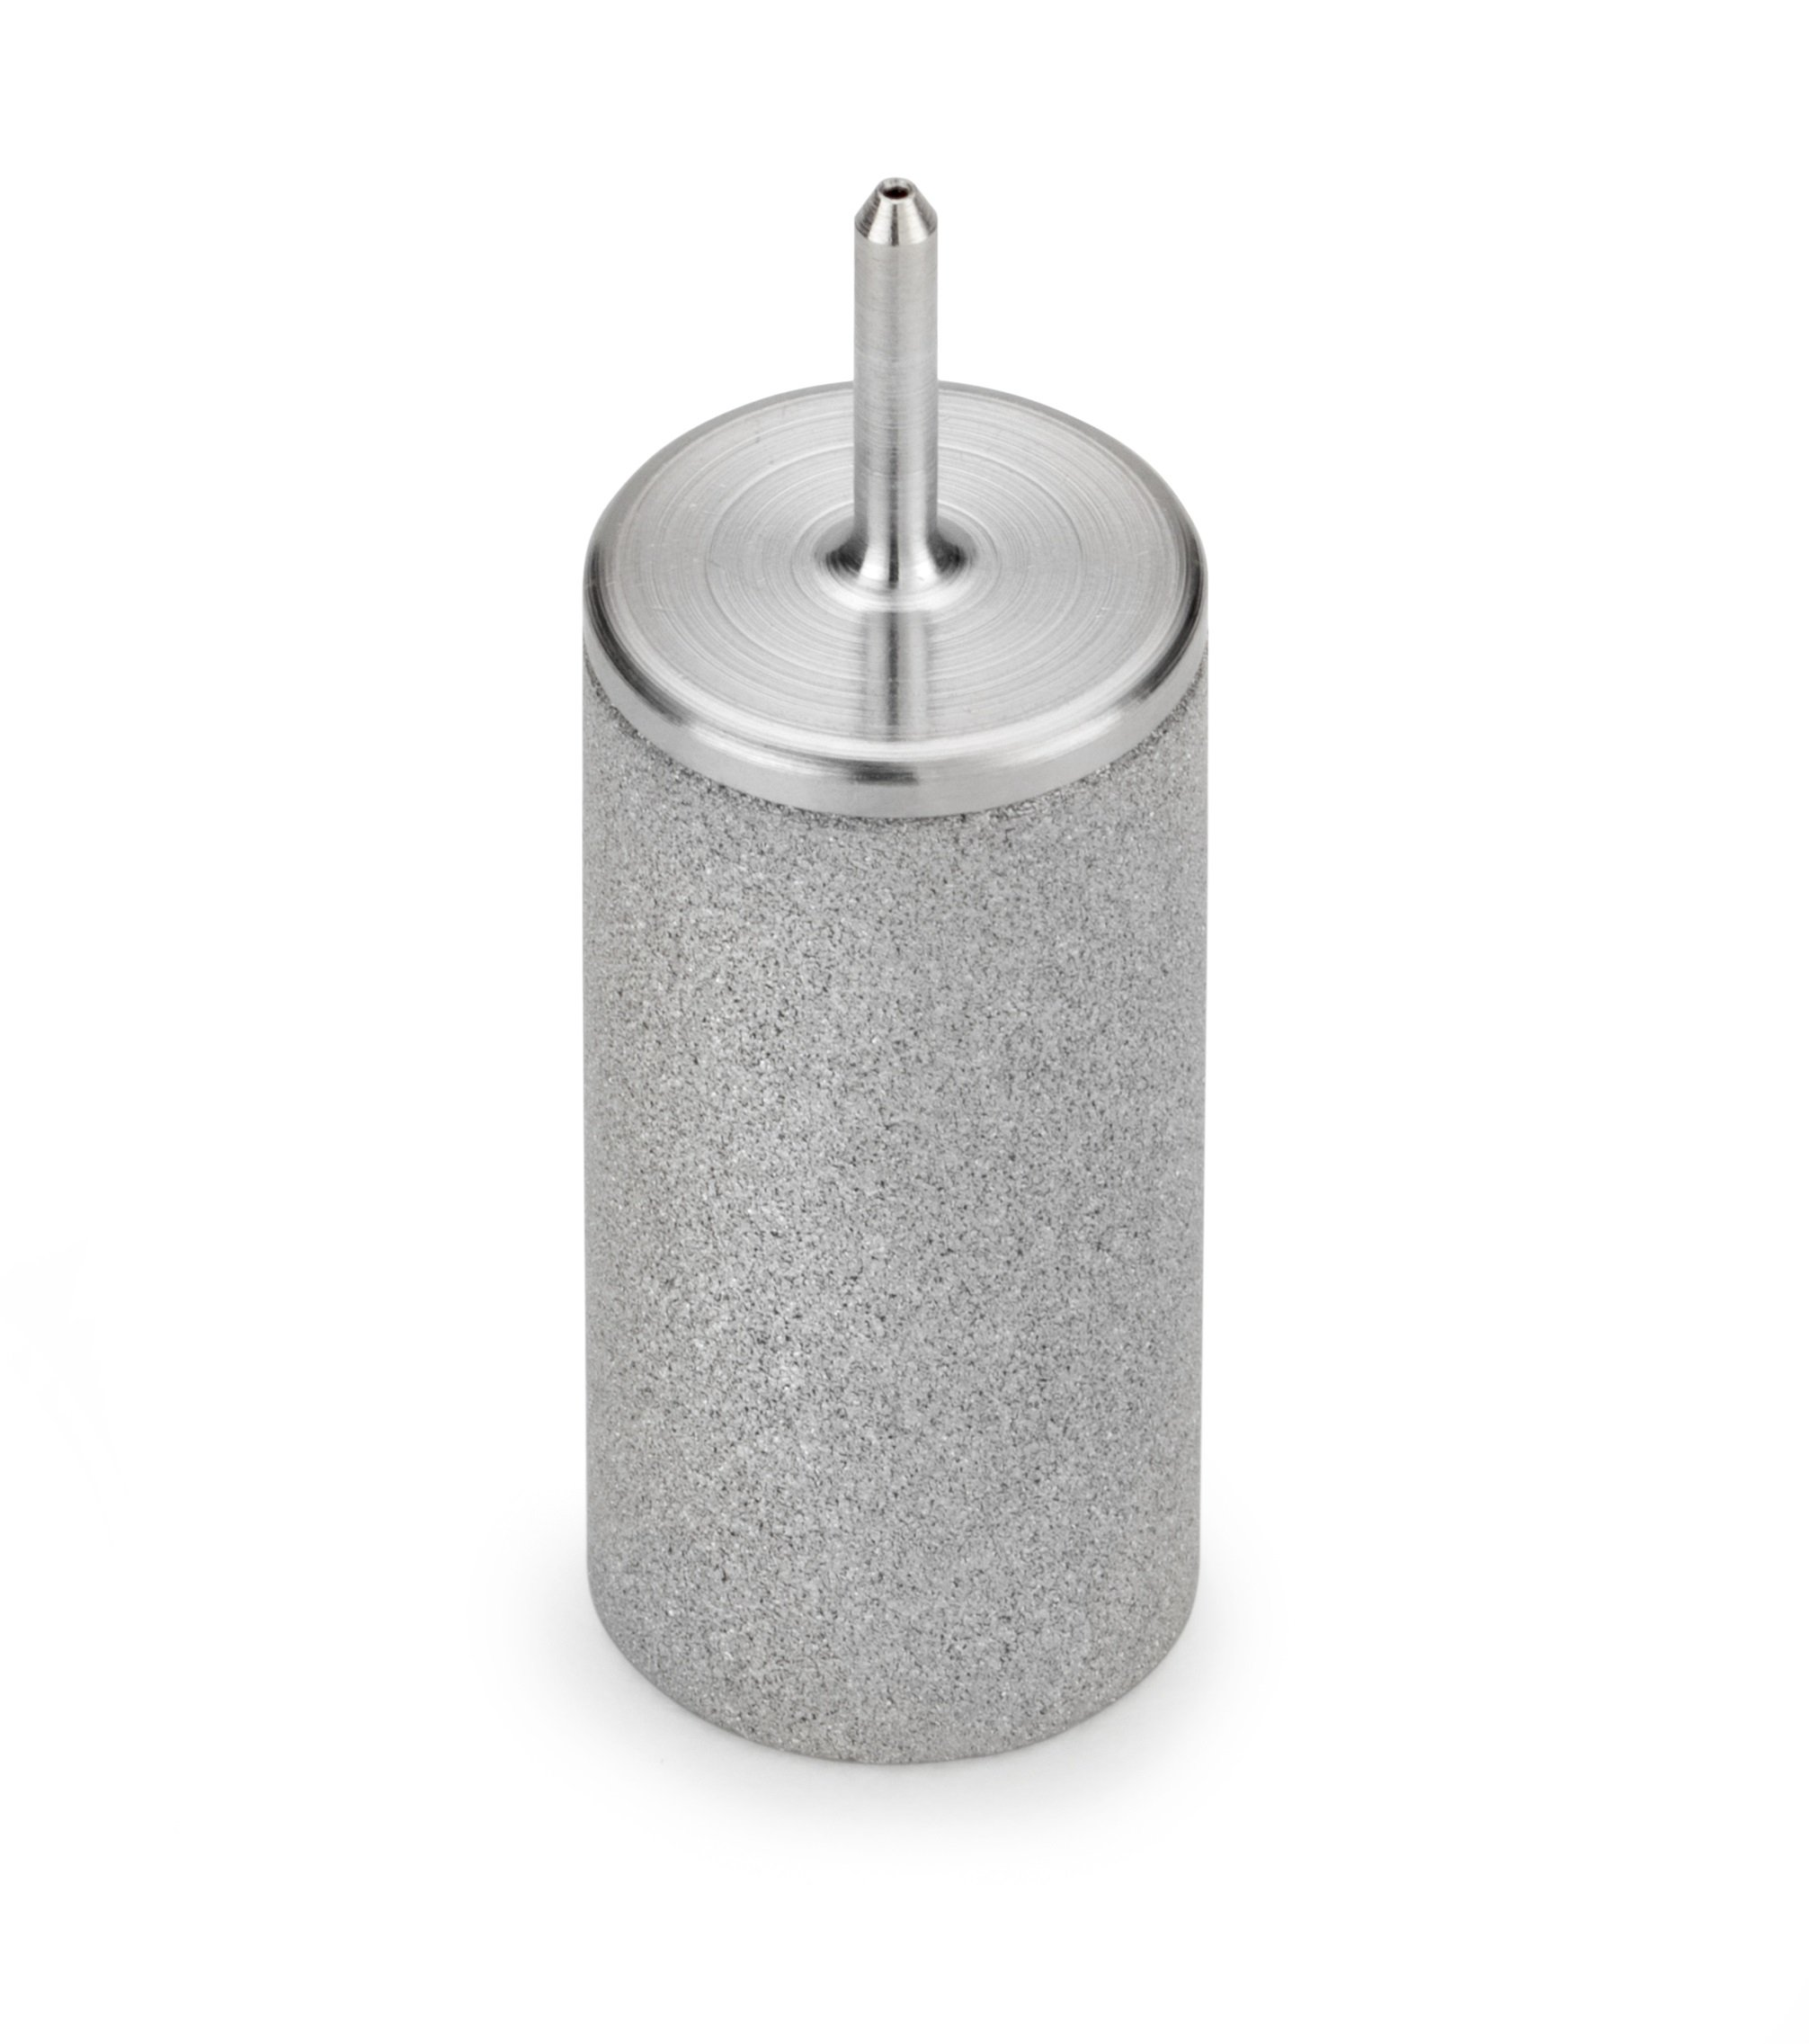 Inlet Stainless Steel Solvent Filters, Tube Stem, 1/16'', 10um, pack of 5